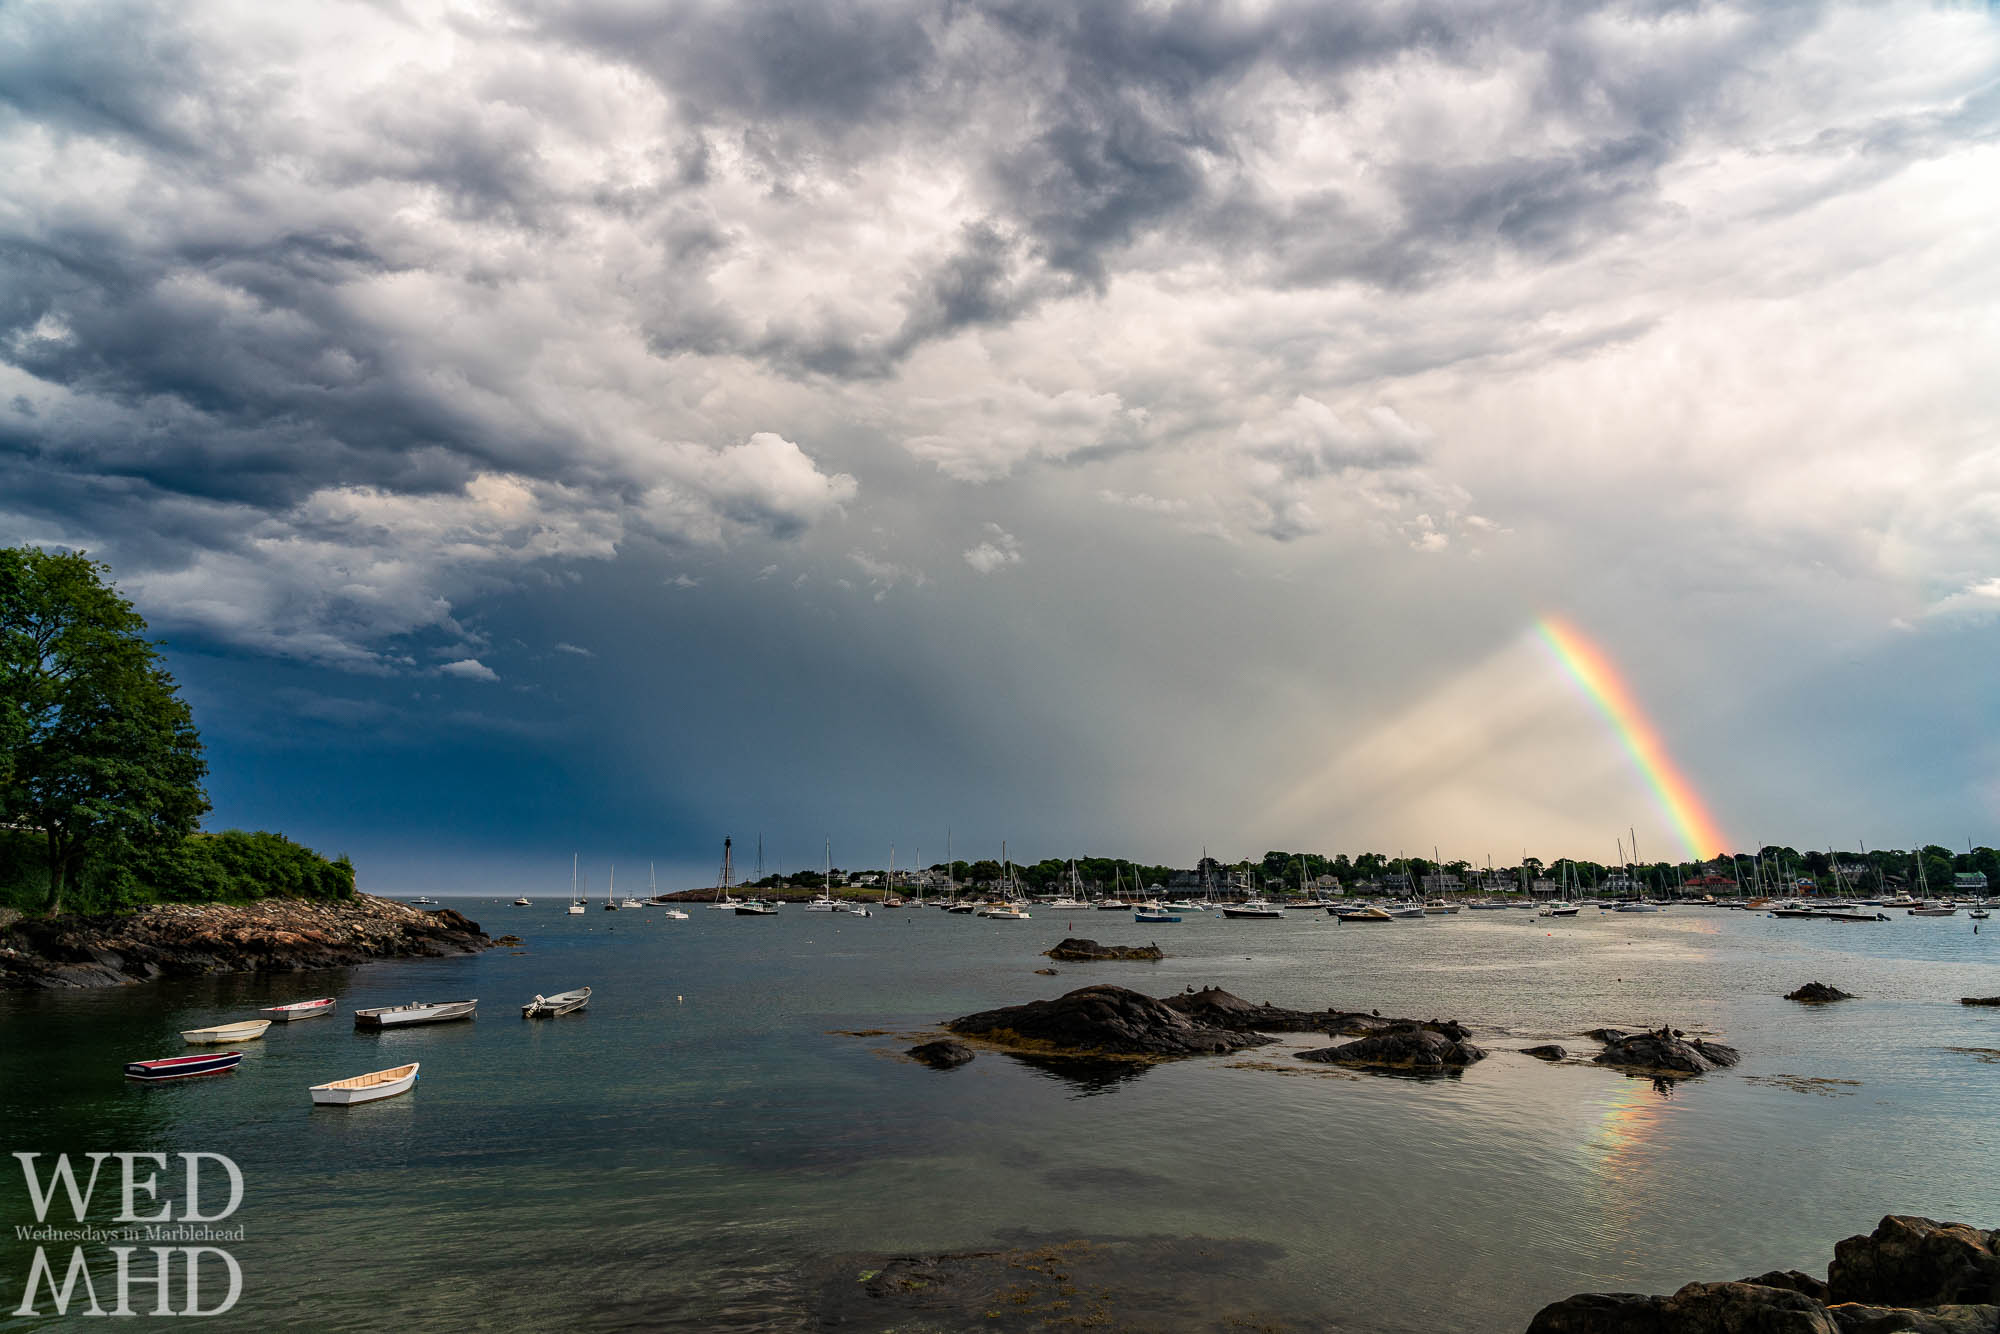 Once the lightning stopped and the rain moved out, the sun came out and lit up this rainbow after the storm